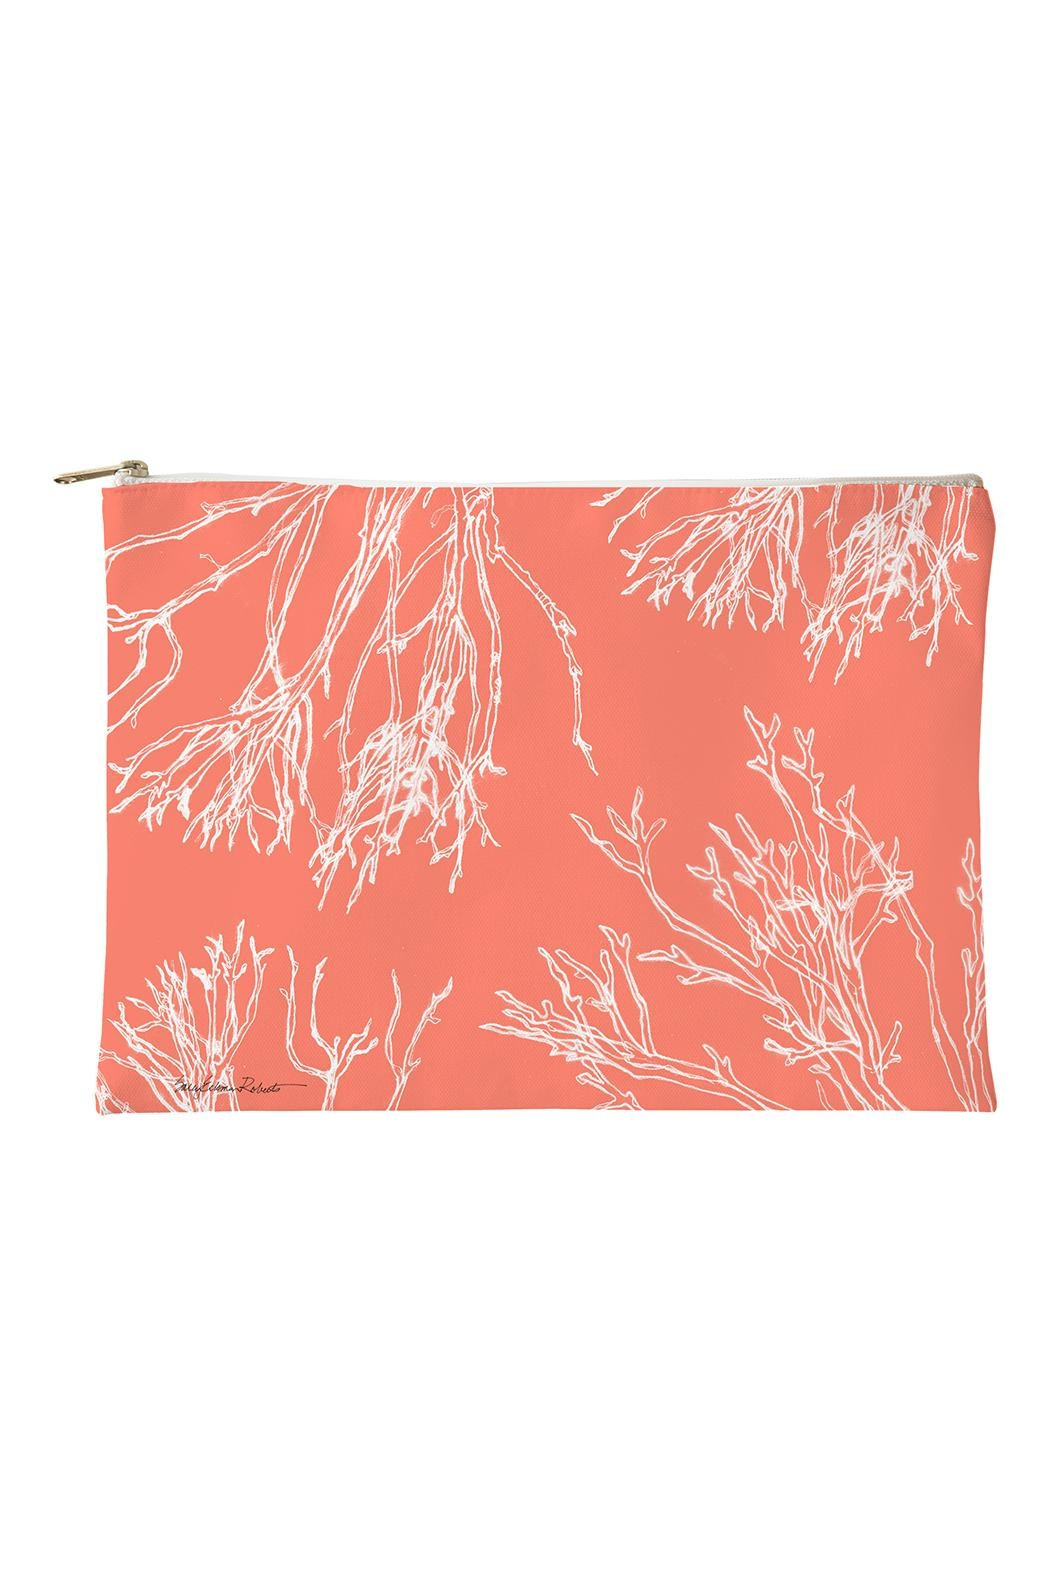 Sally Eckman Roberts Red-Coral Pouch - Main Image